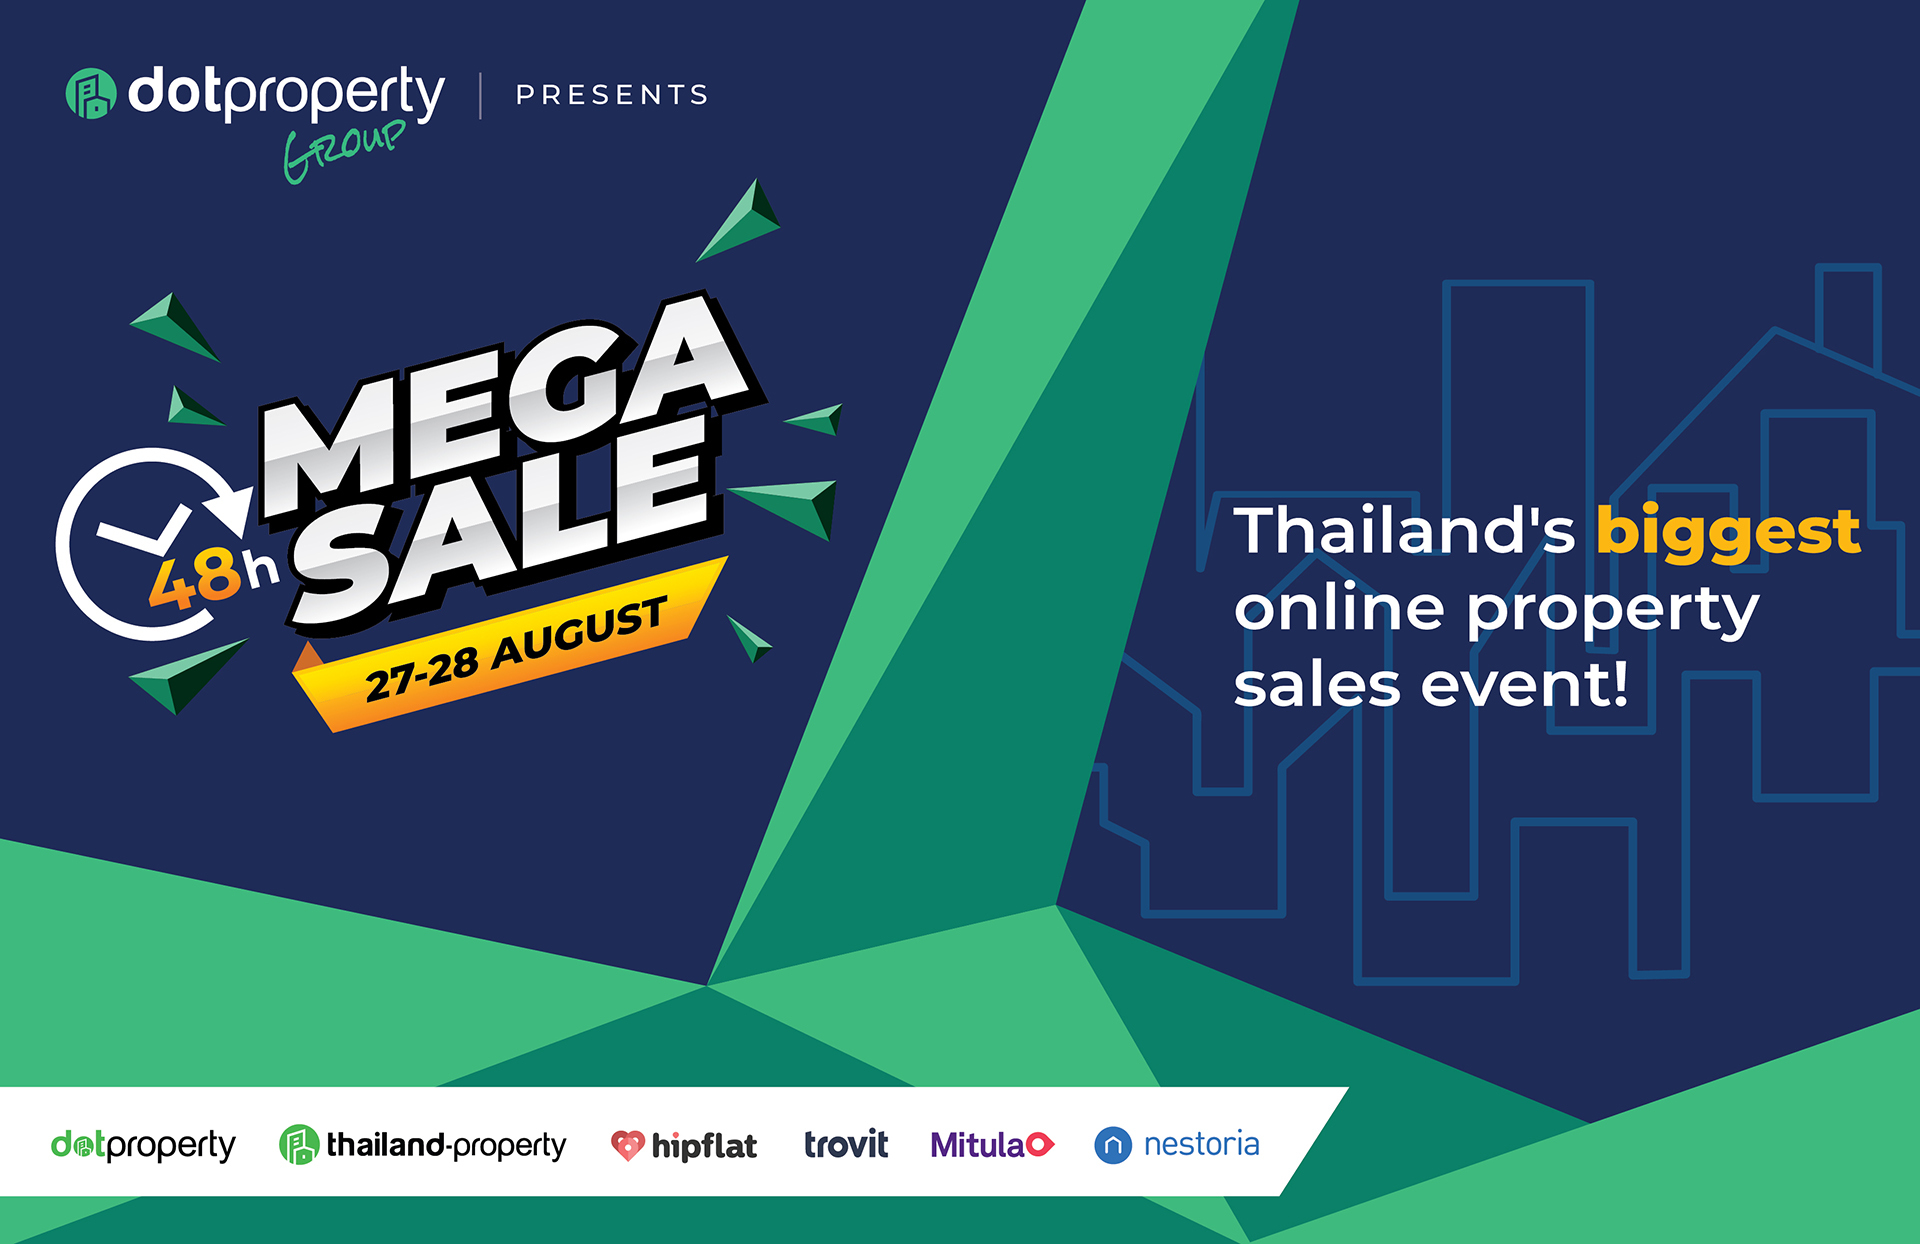 Dot Property 48 Hour Mega Sale sees a record number of property seekers take advantage of historic discounts